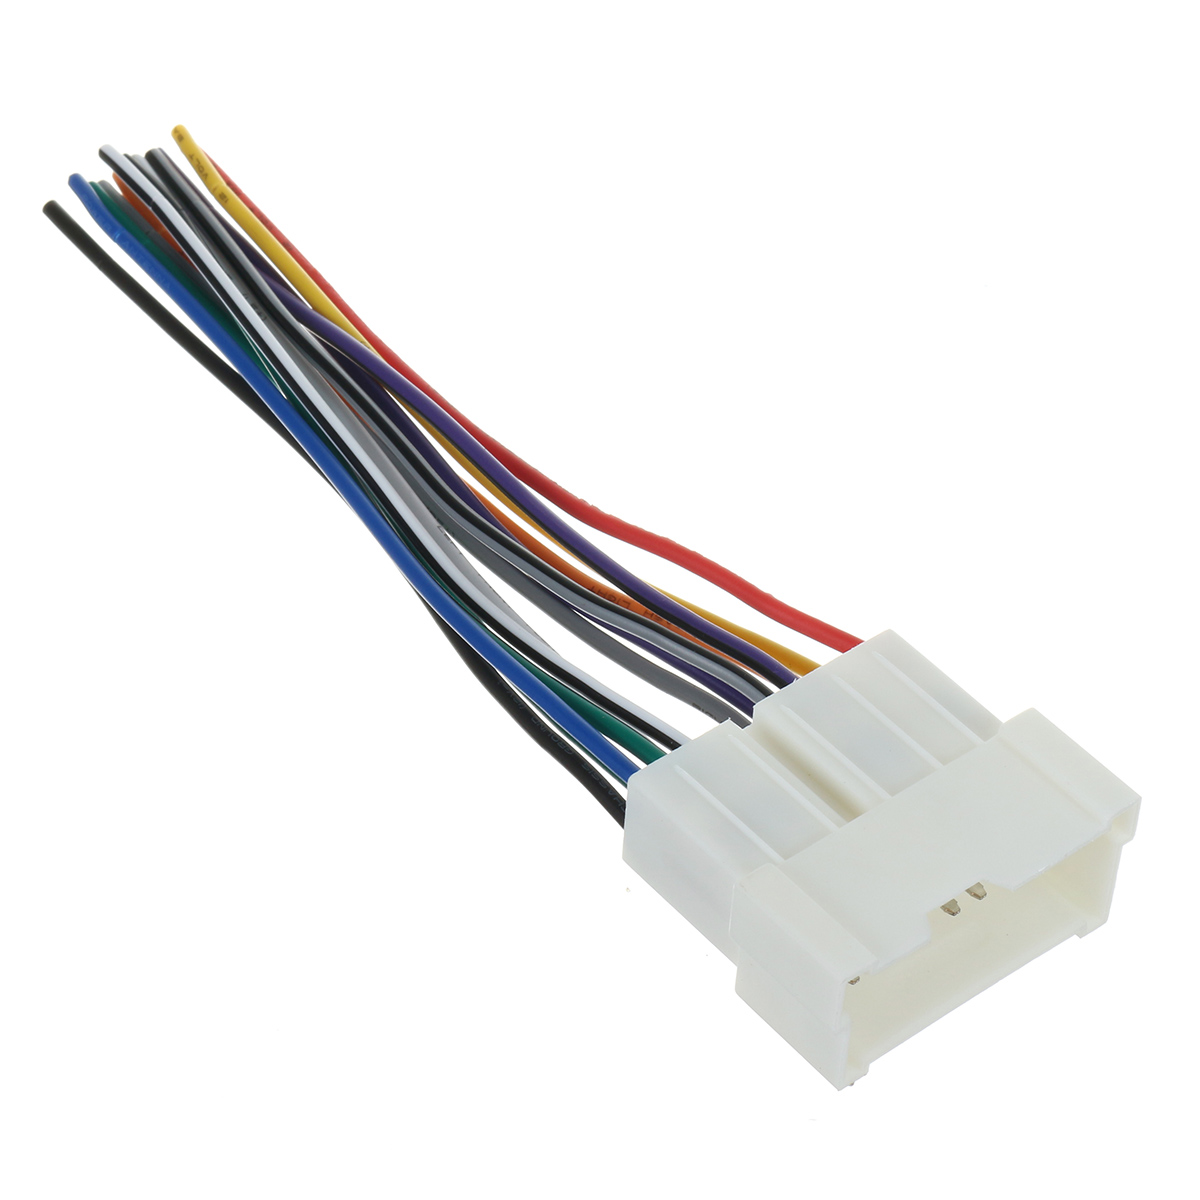 hight resolution of cd dvd player wiring harness plug cable adapter connector